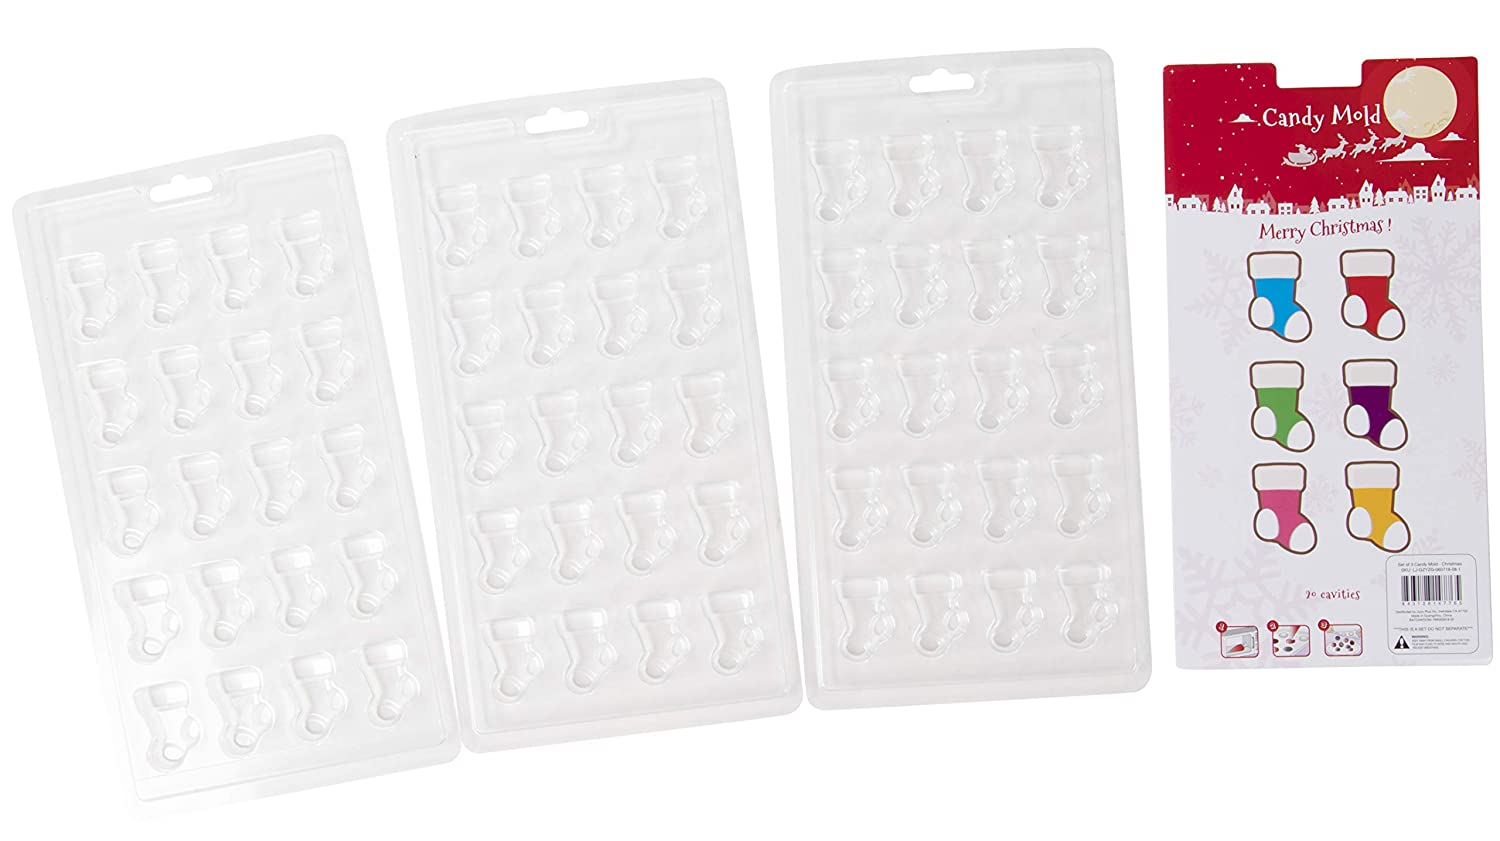 Christmas Chocolate Candy Mold - 3-Set Christmas Stocking Clear Mold for Treats, Jelly, Fudge, Perfect for Holidays and Festive Parties, 12 Cavities on Each Mold